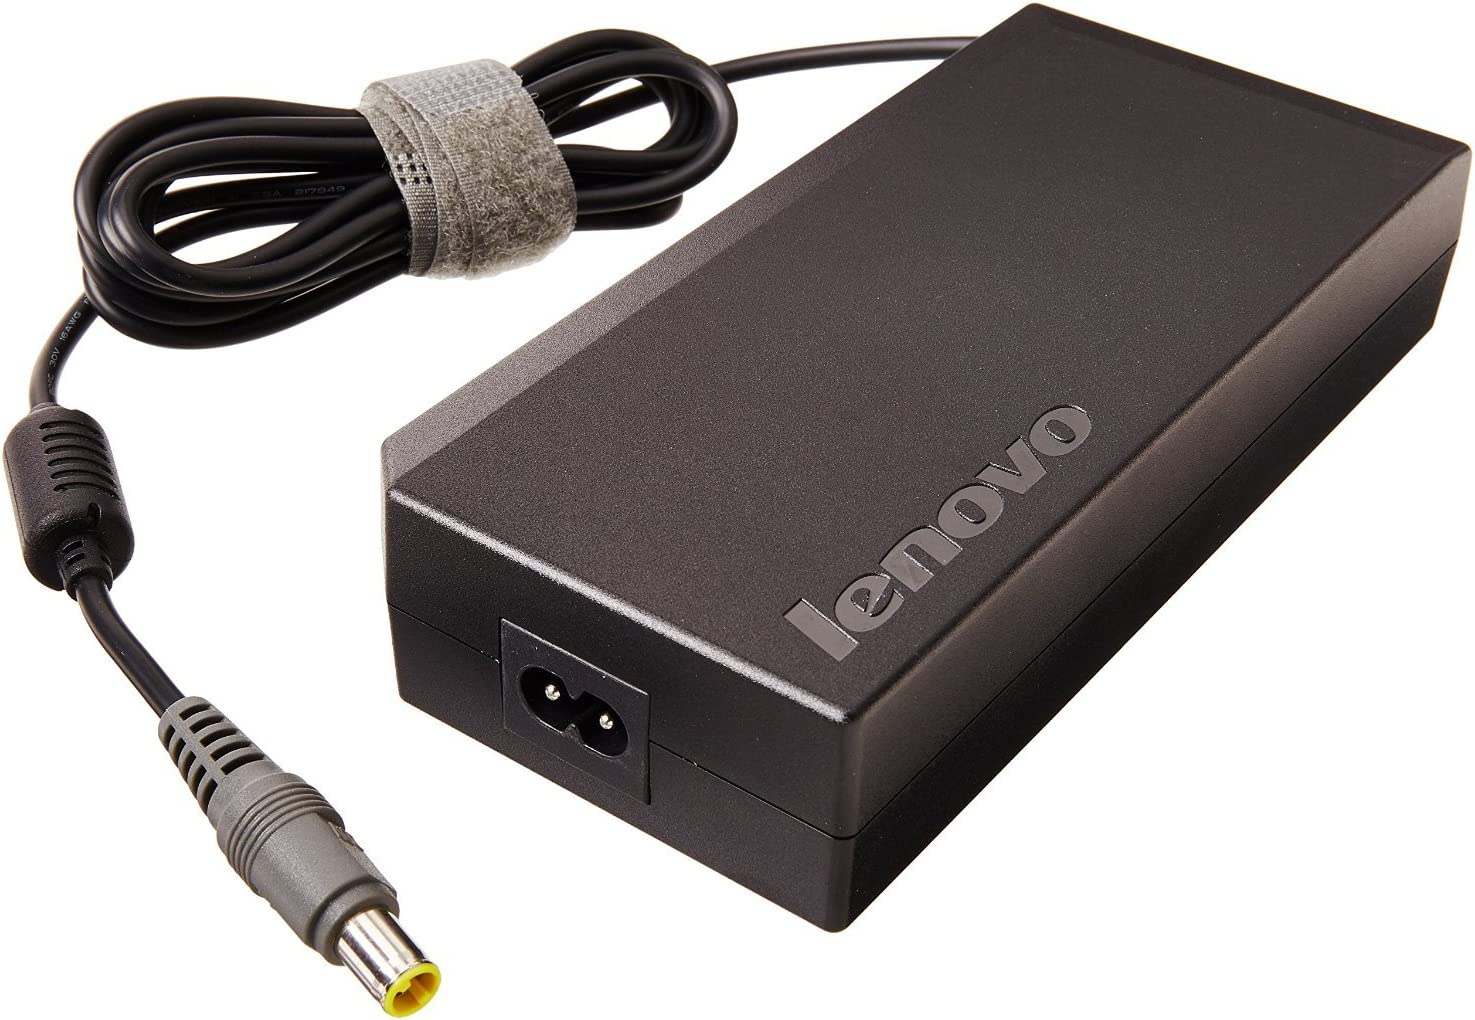 IBM Lenovo 170W Replacement AC Adapter for ThinkPad W530